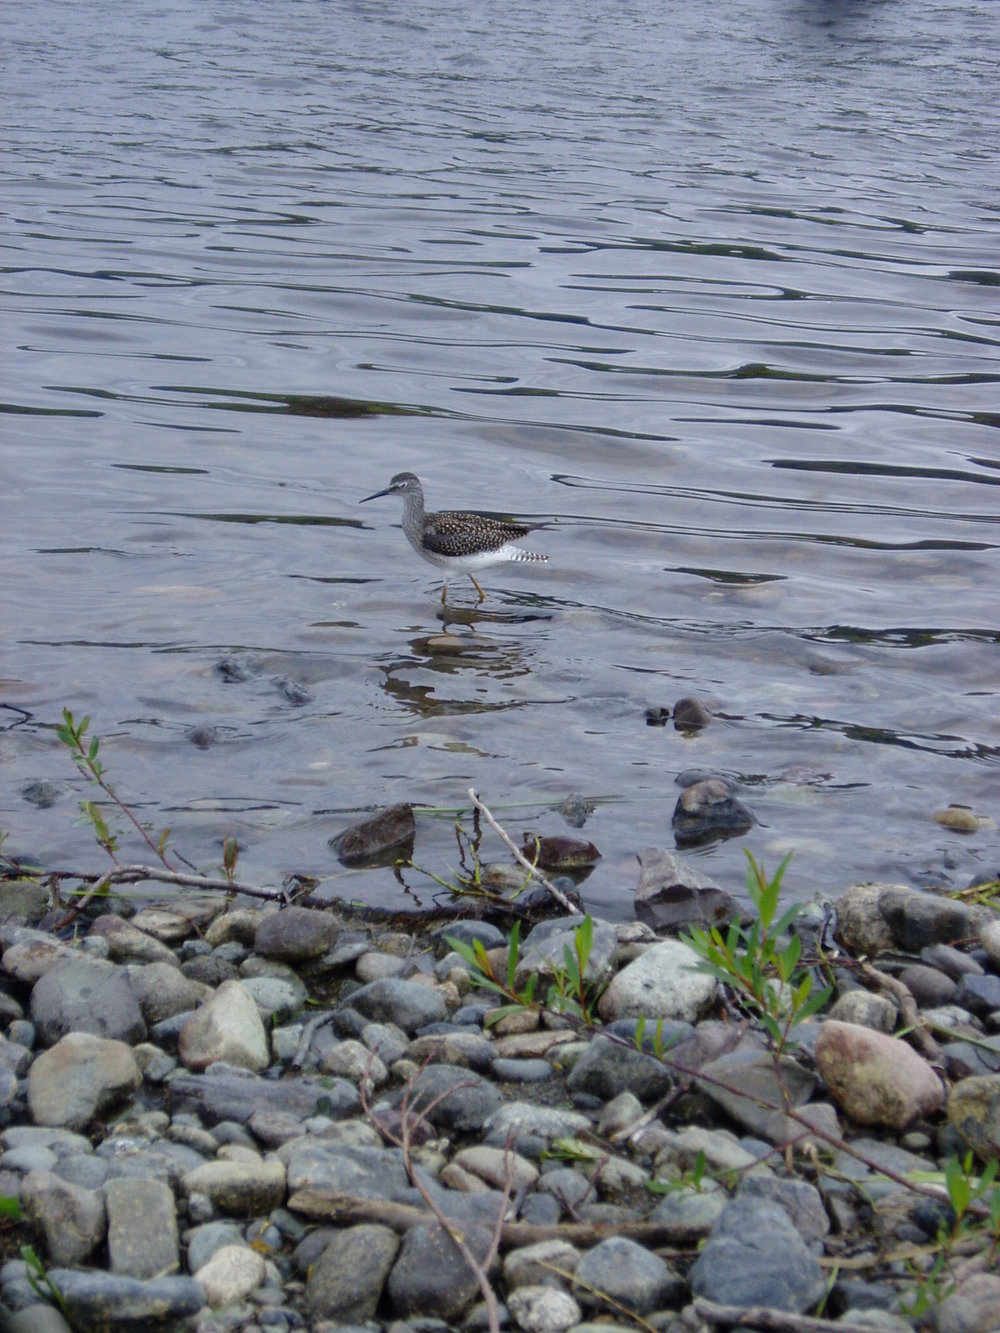 Sandpiper on the shores of Muncho Lake